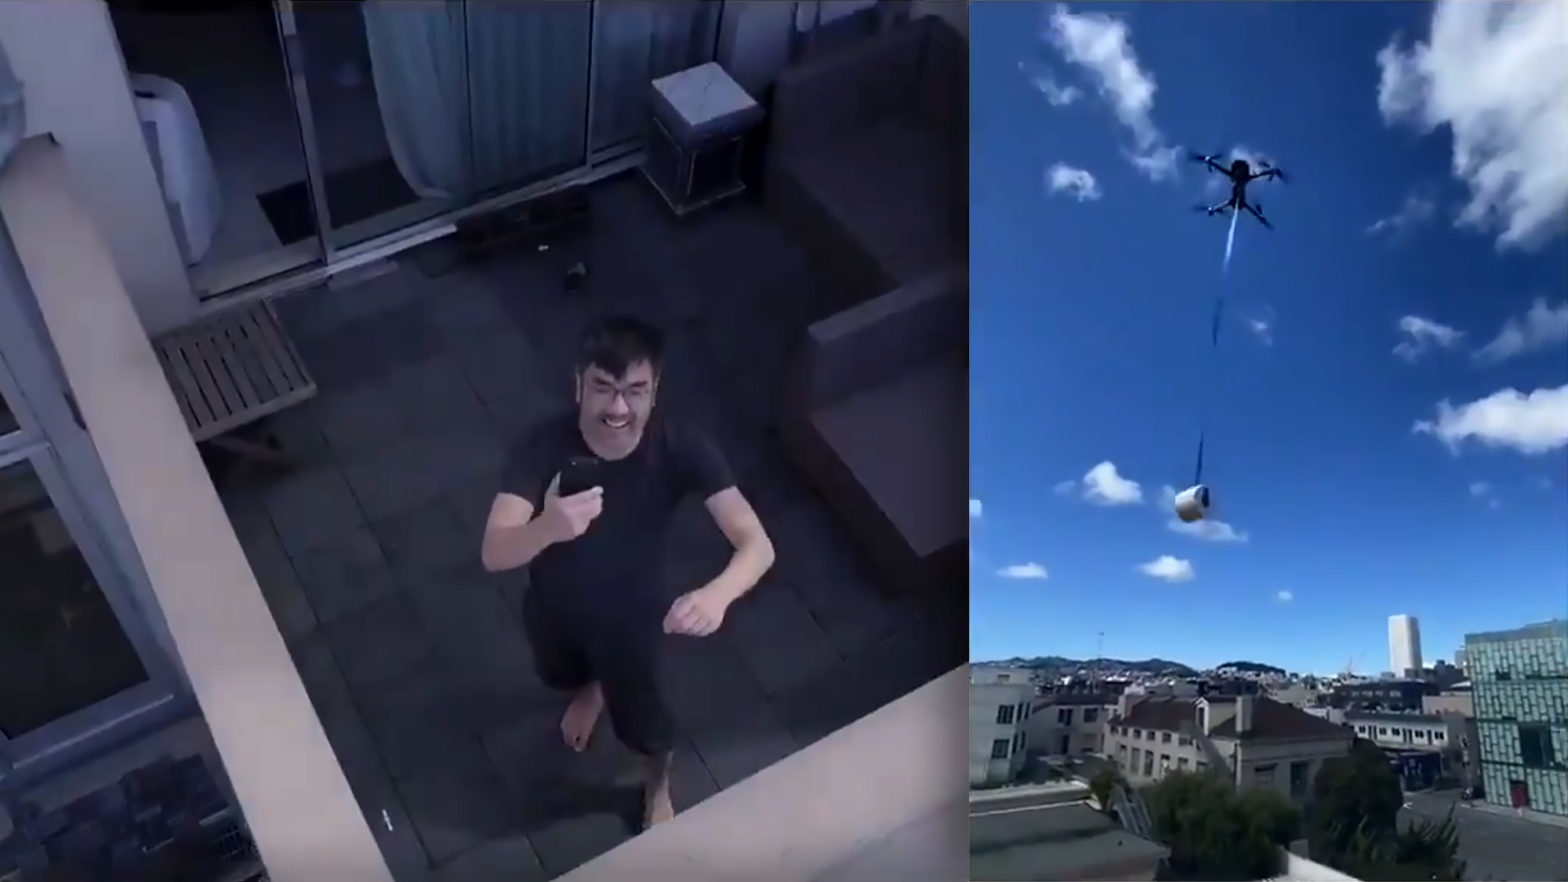 Man Delivered Toilet Paper To Friend With A Drone